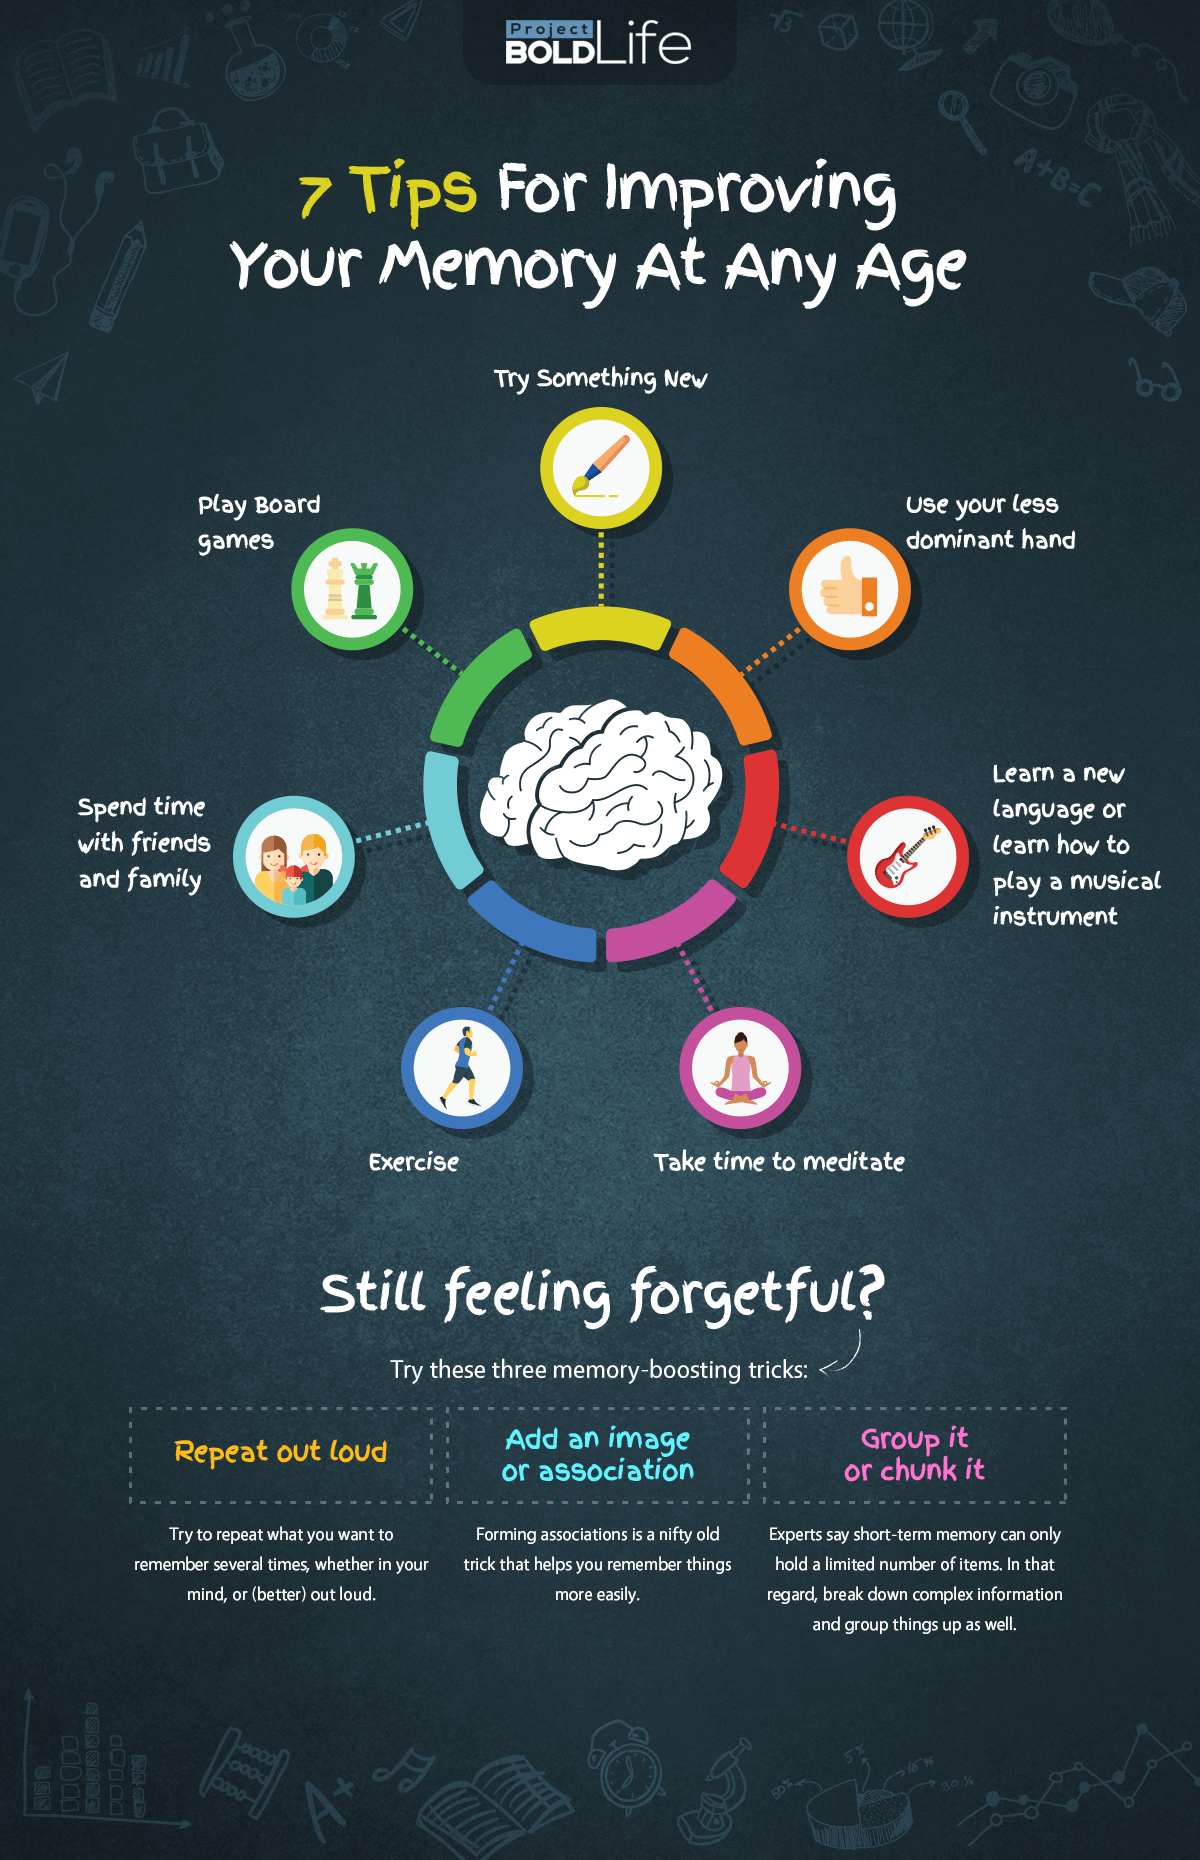 7 Tips for Improving Your Memory Infographic